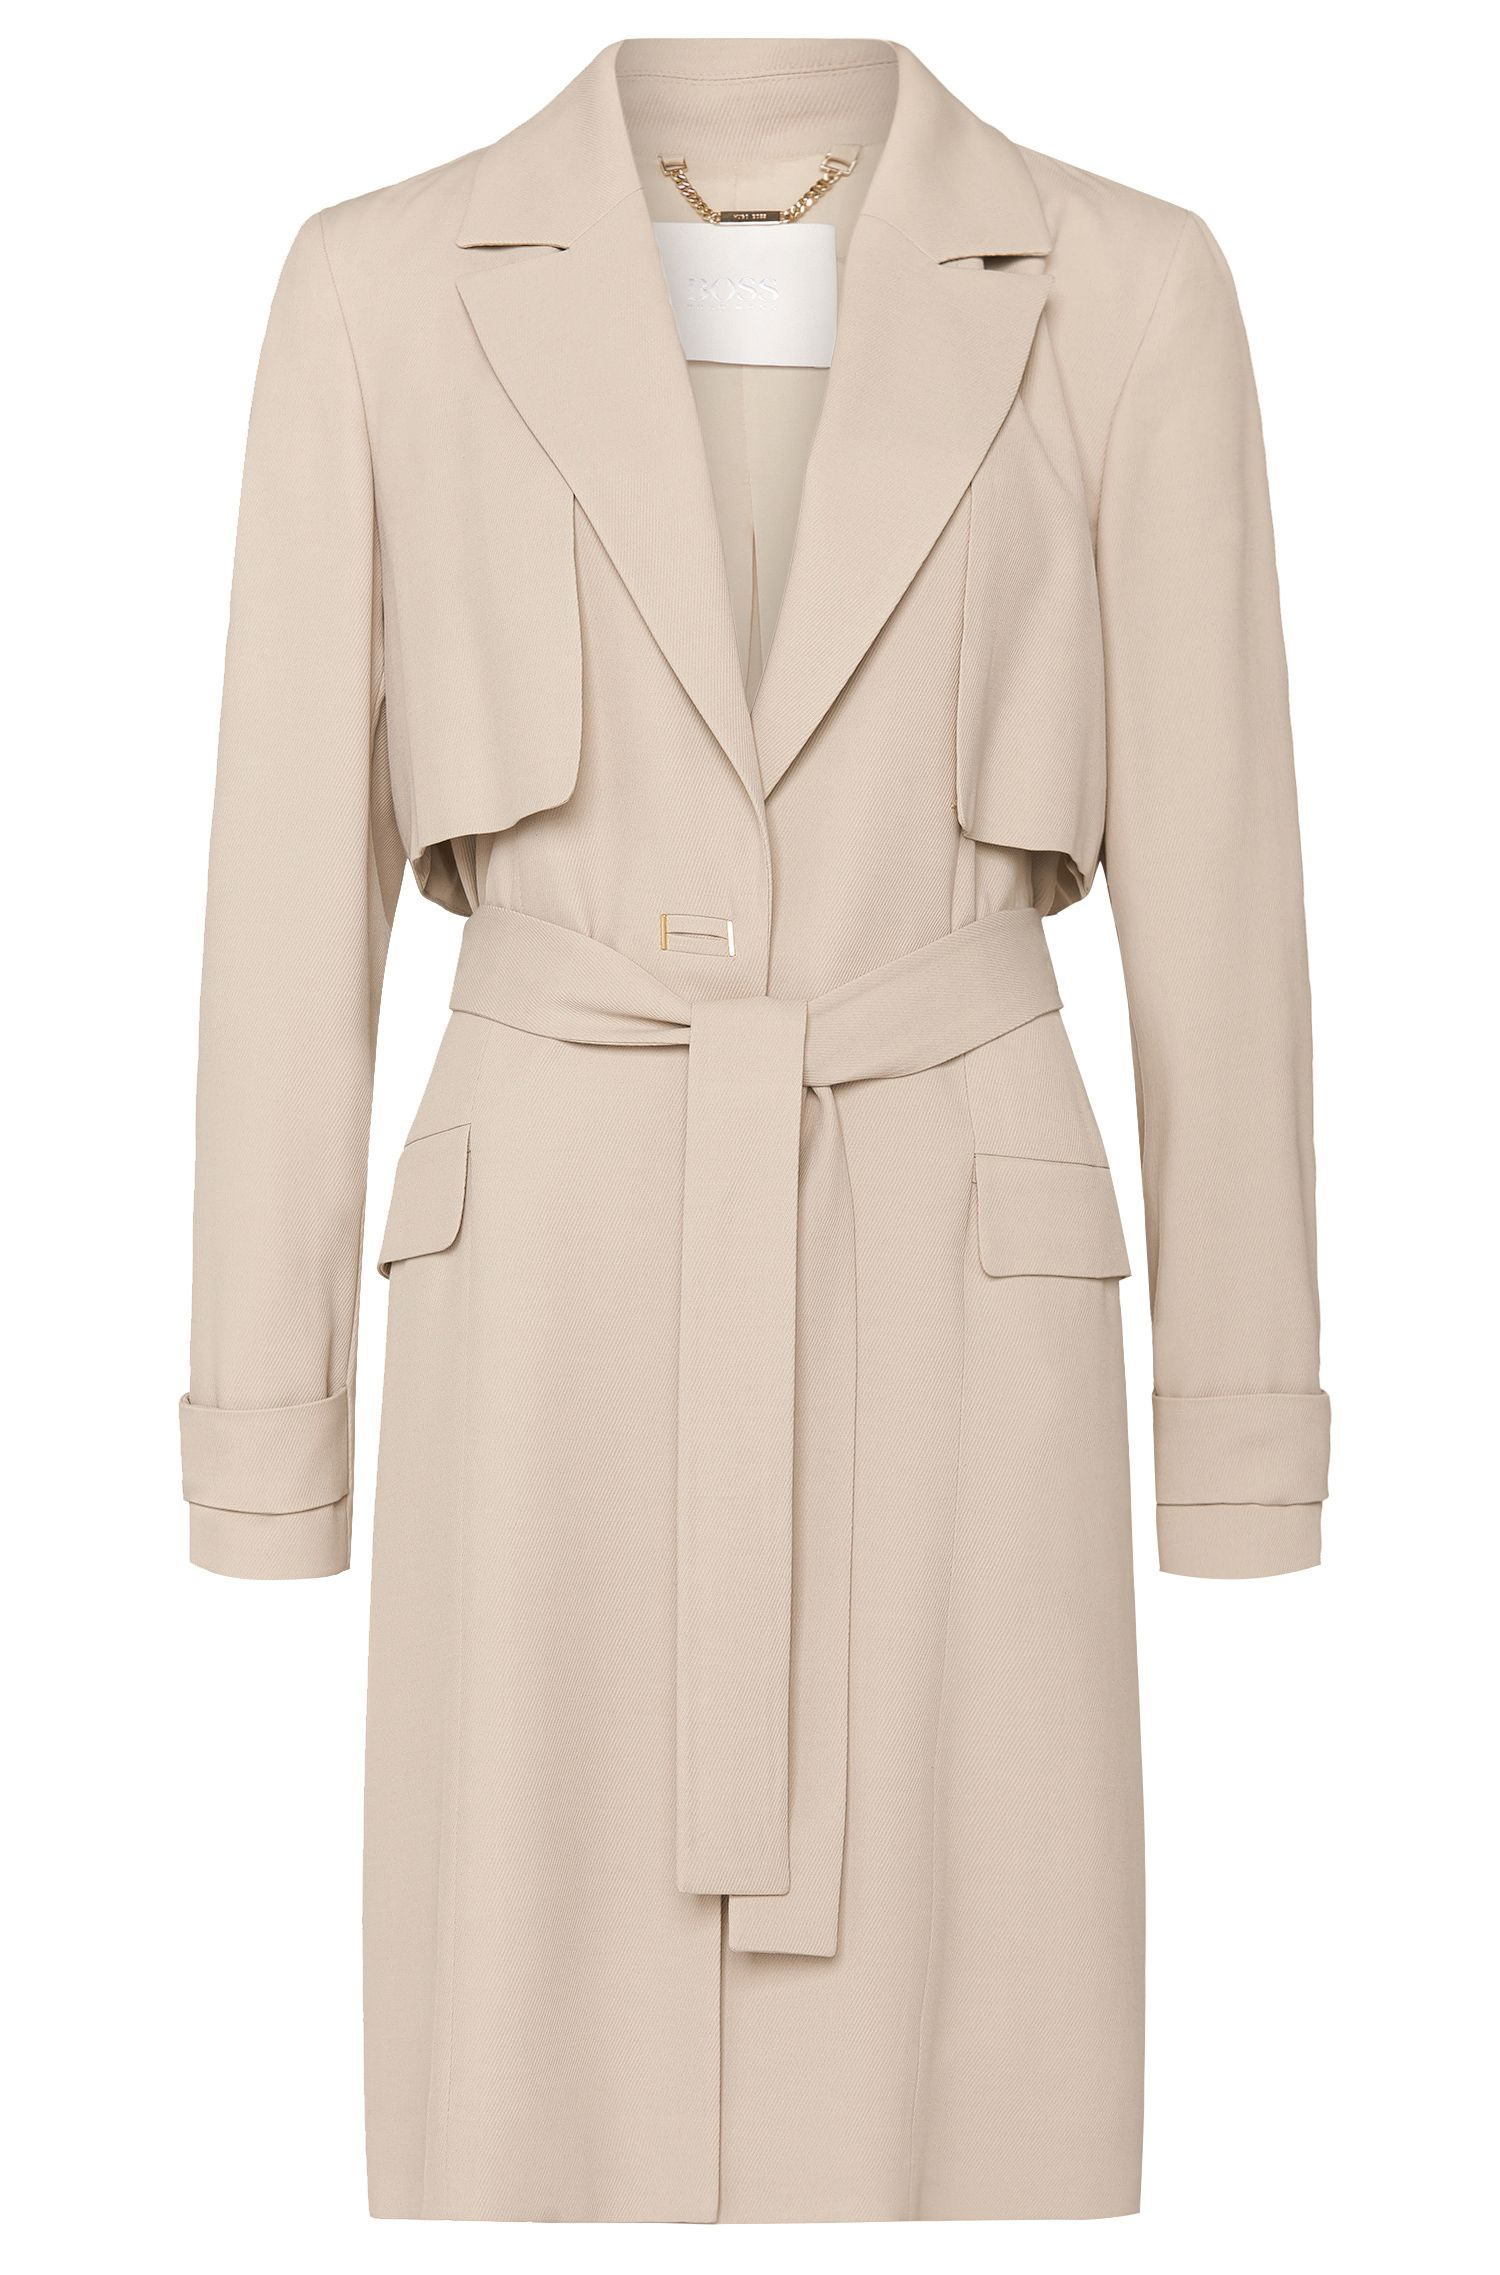 'Capeipa' | Virgin Wool Blend Trench Coat